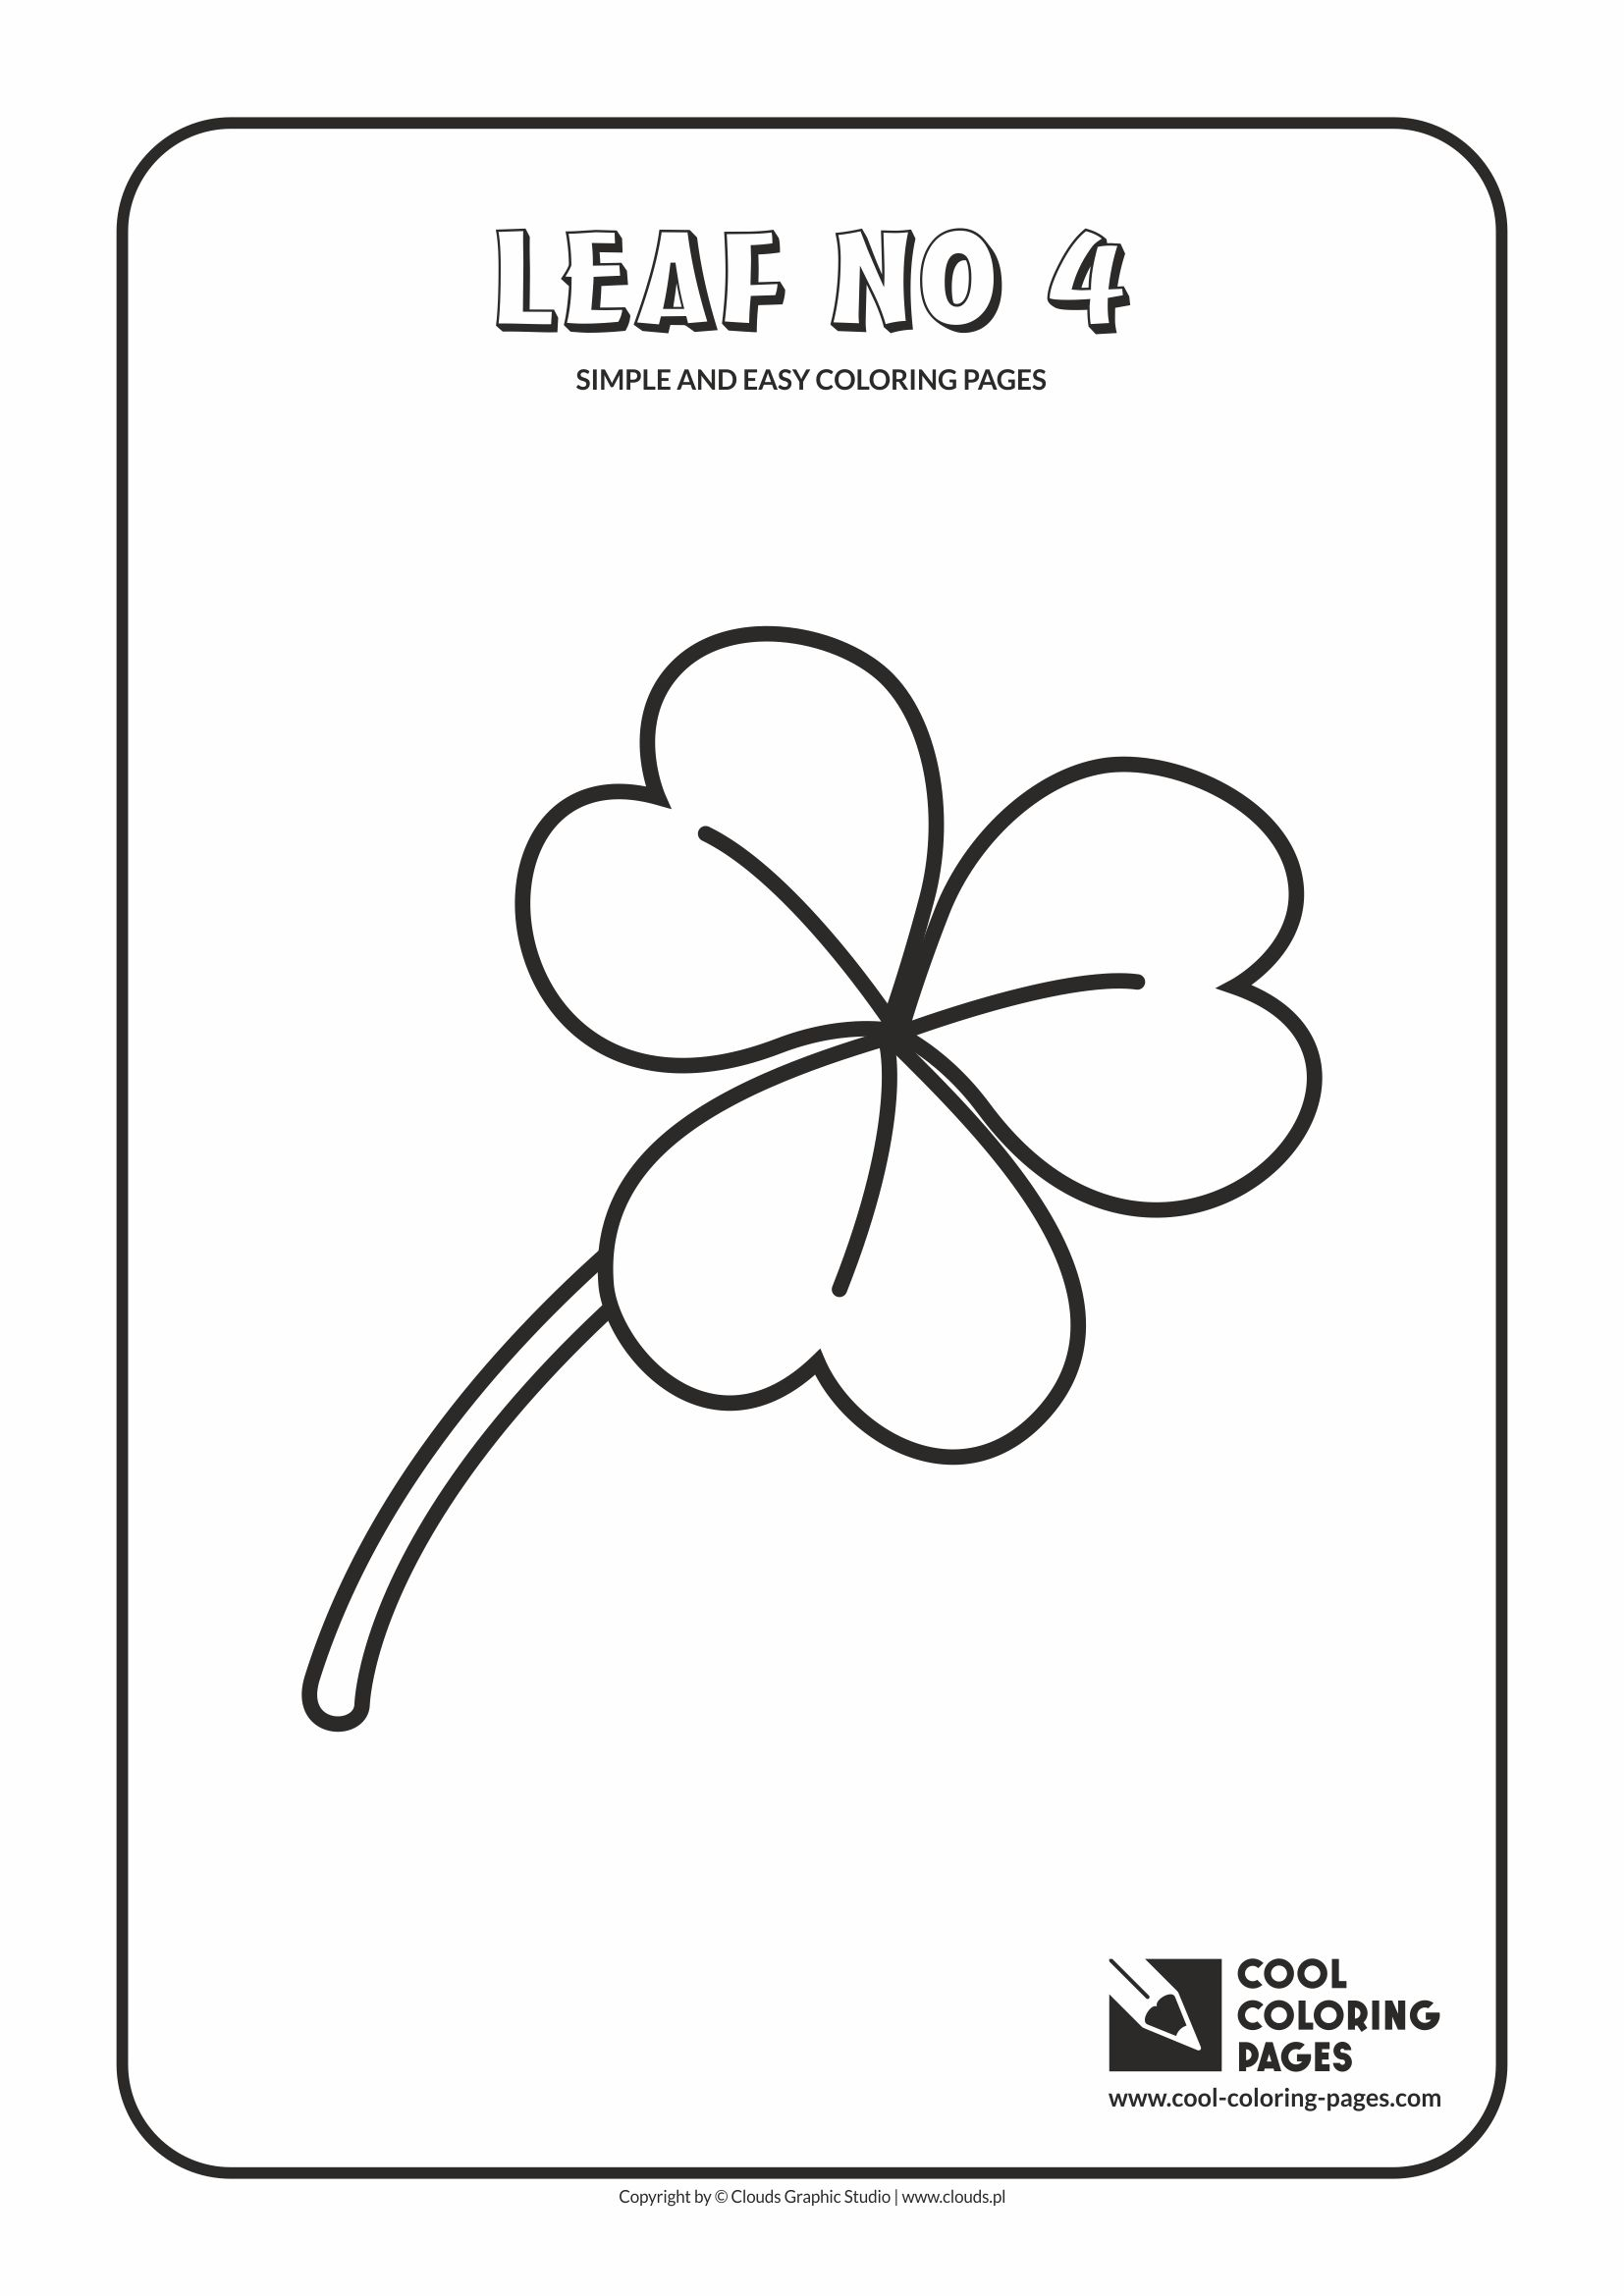 Simple and easy coloring pages for toddlers - Leaf no 4